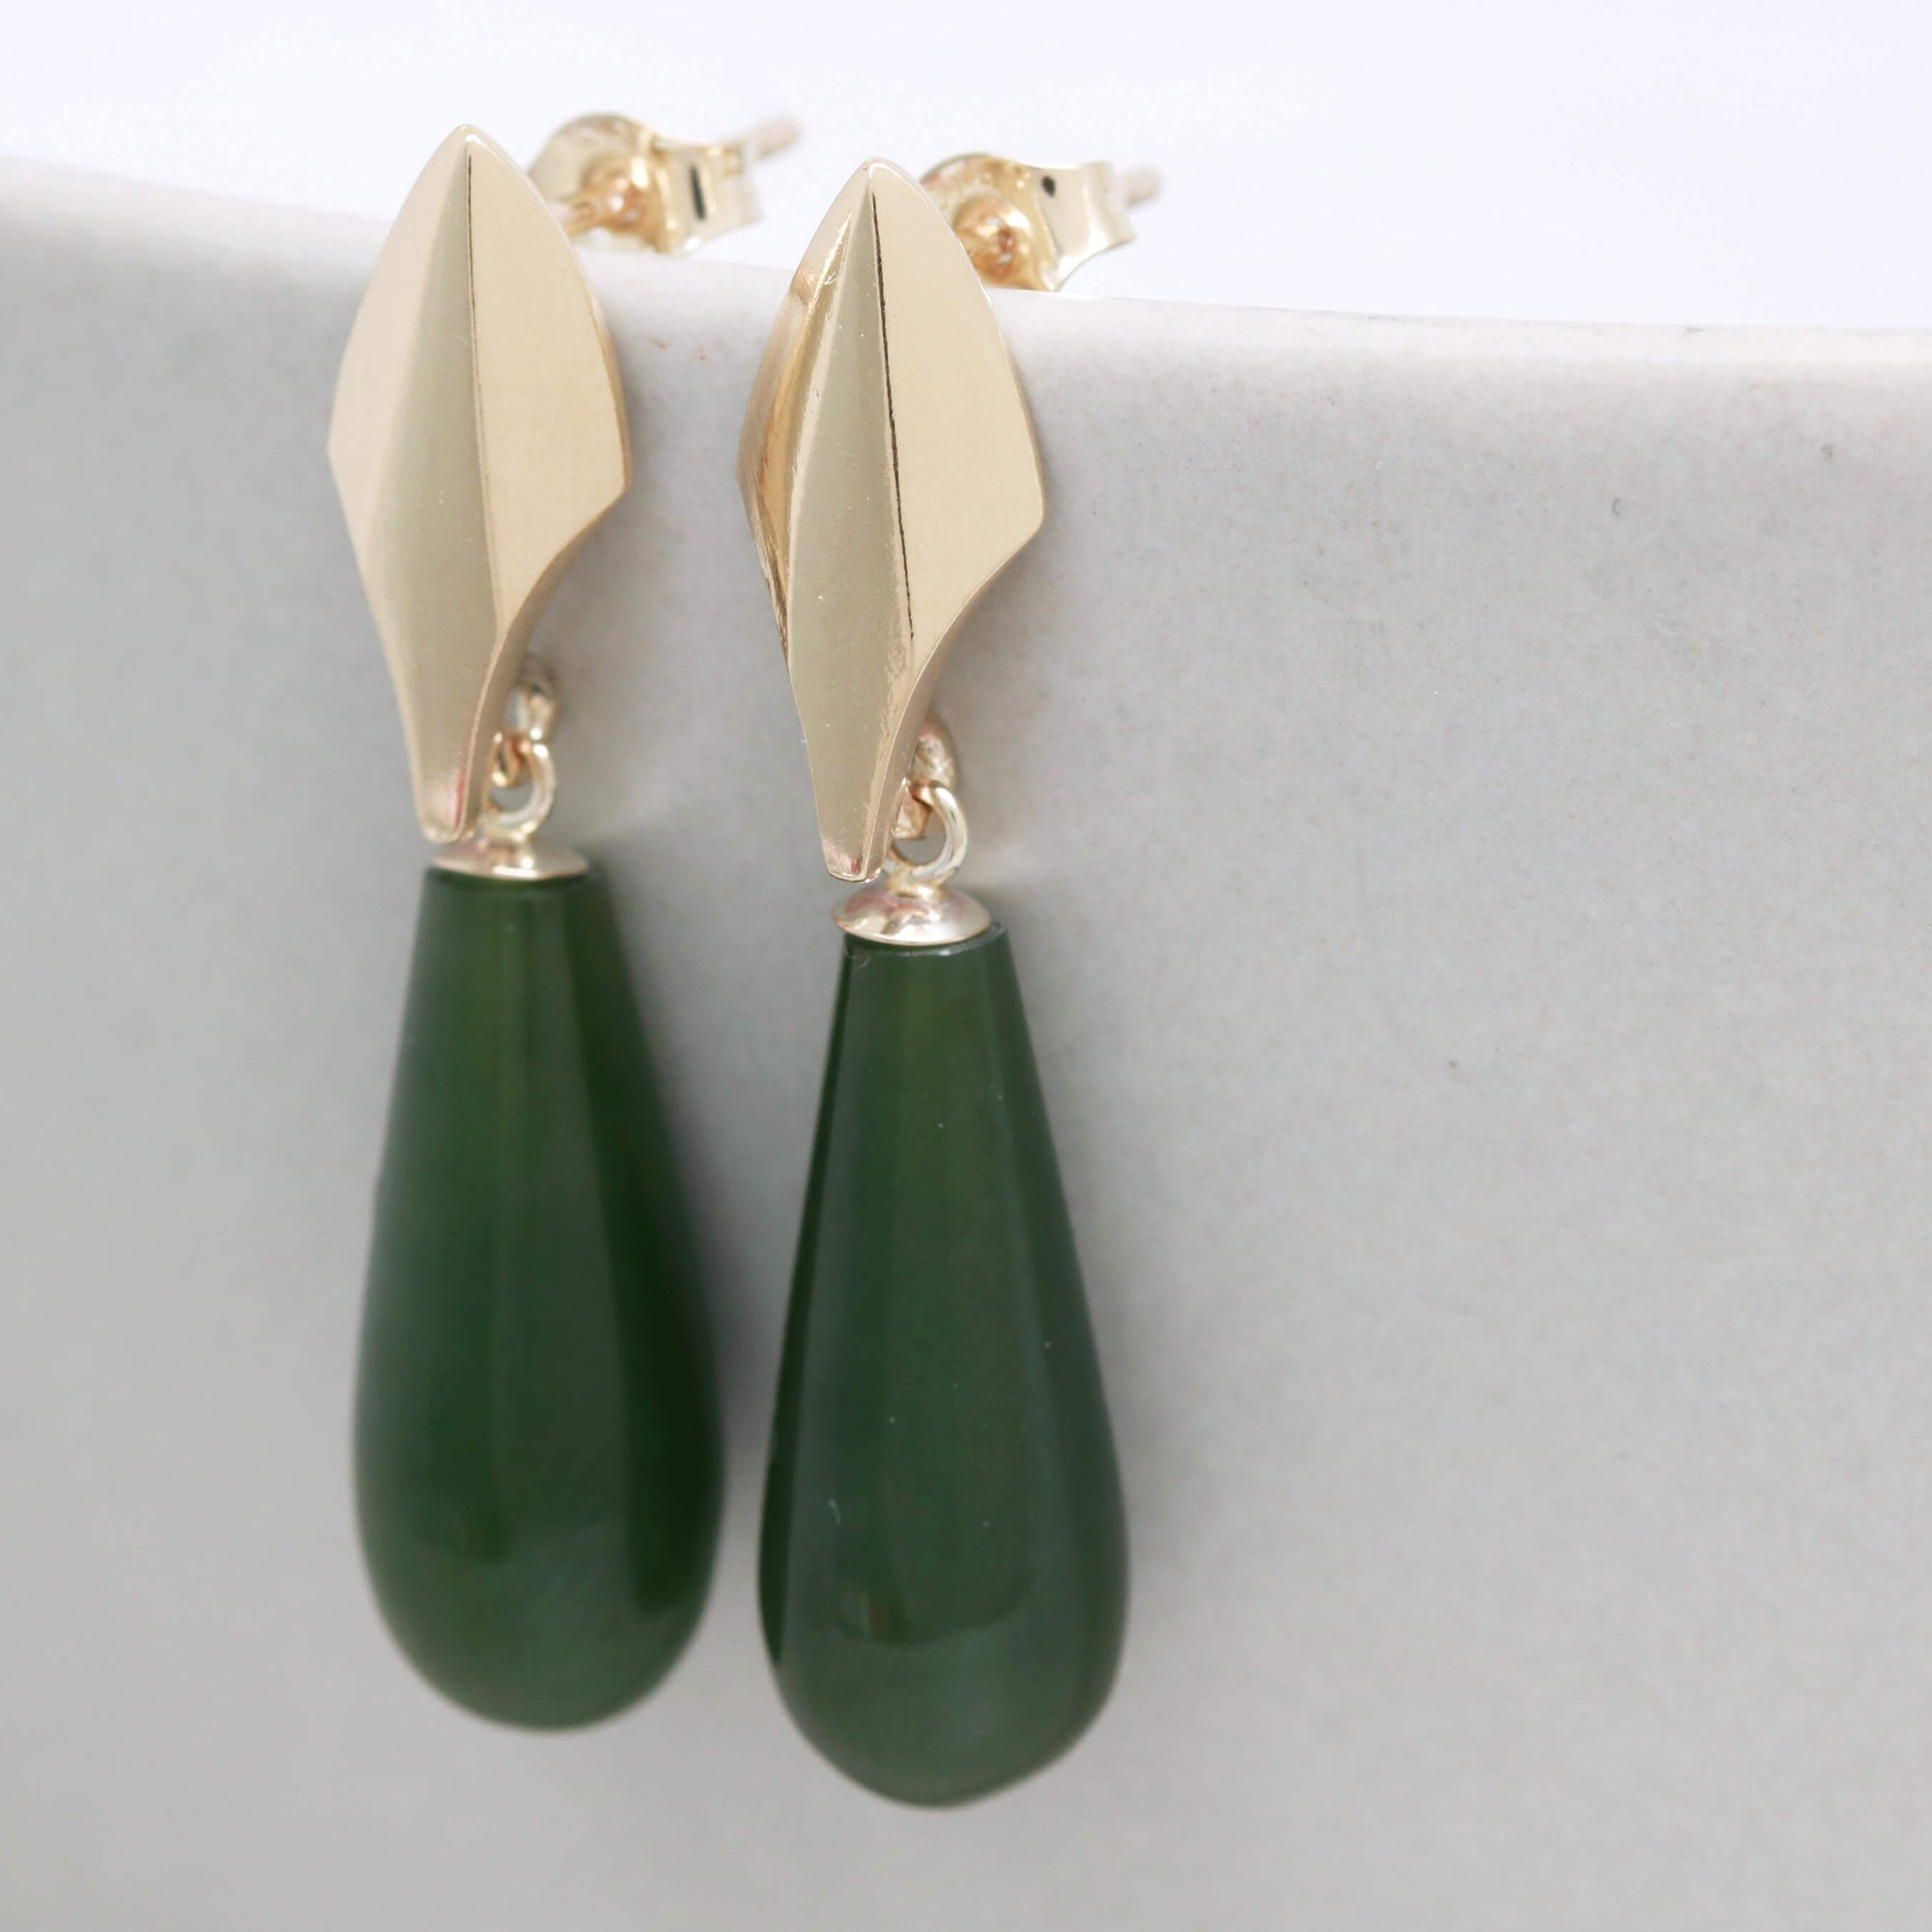 9ct Gold Deco Dropper Earrings with Nephrite